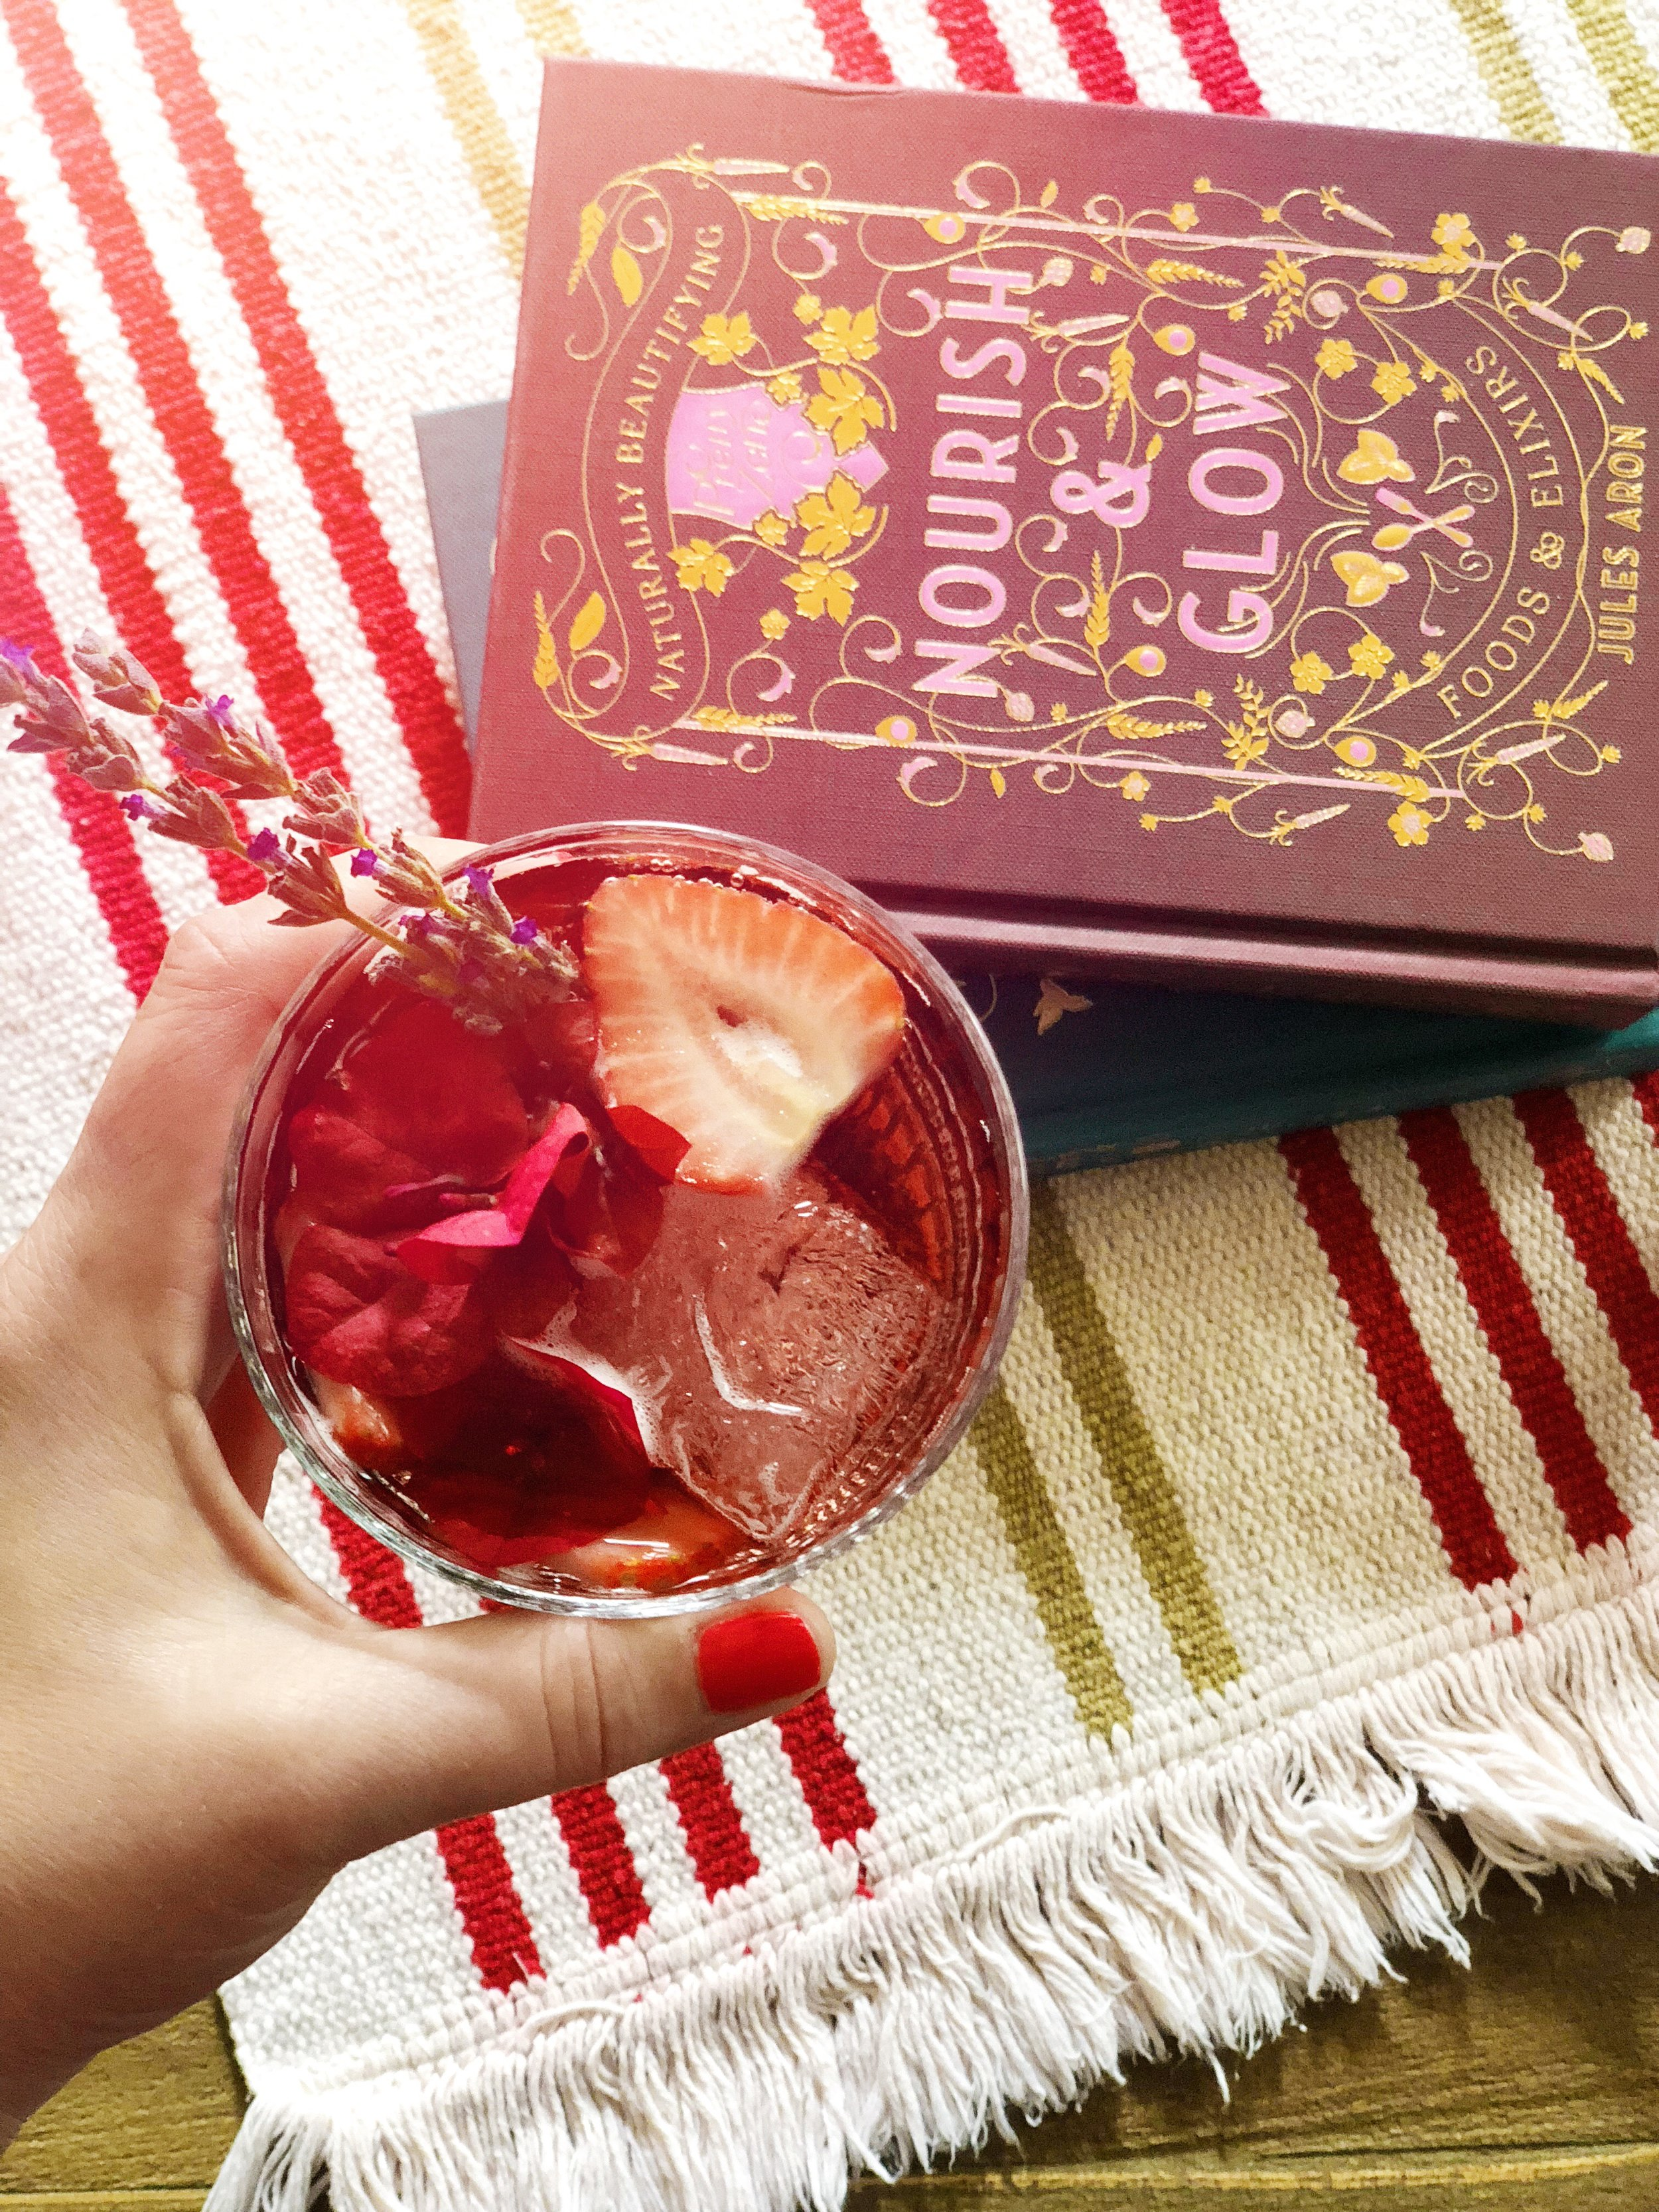 Petals and Blooms Beauty Punch from Jules Aron's Fresh & Pure book |drinkingwithchickens.com